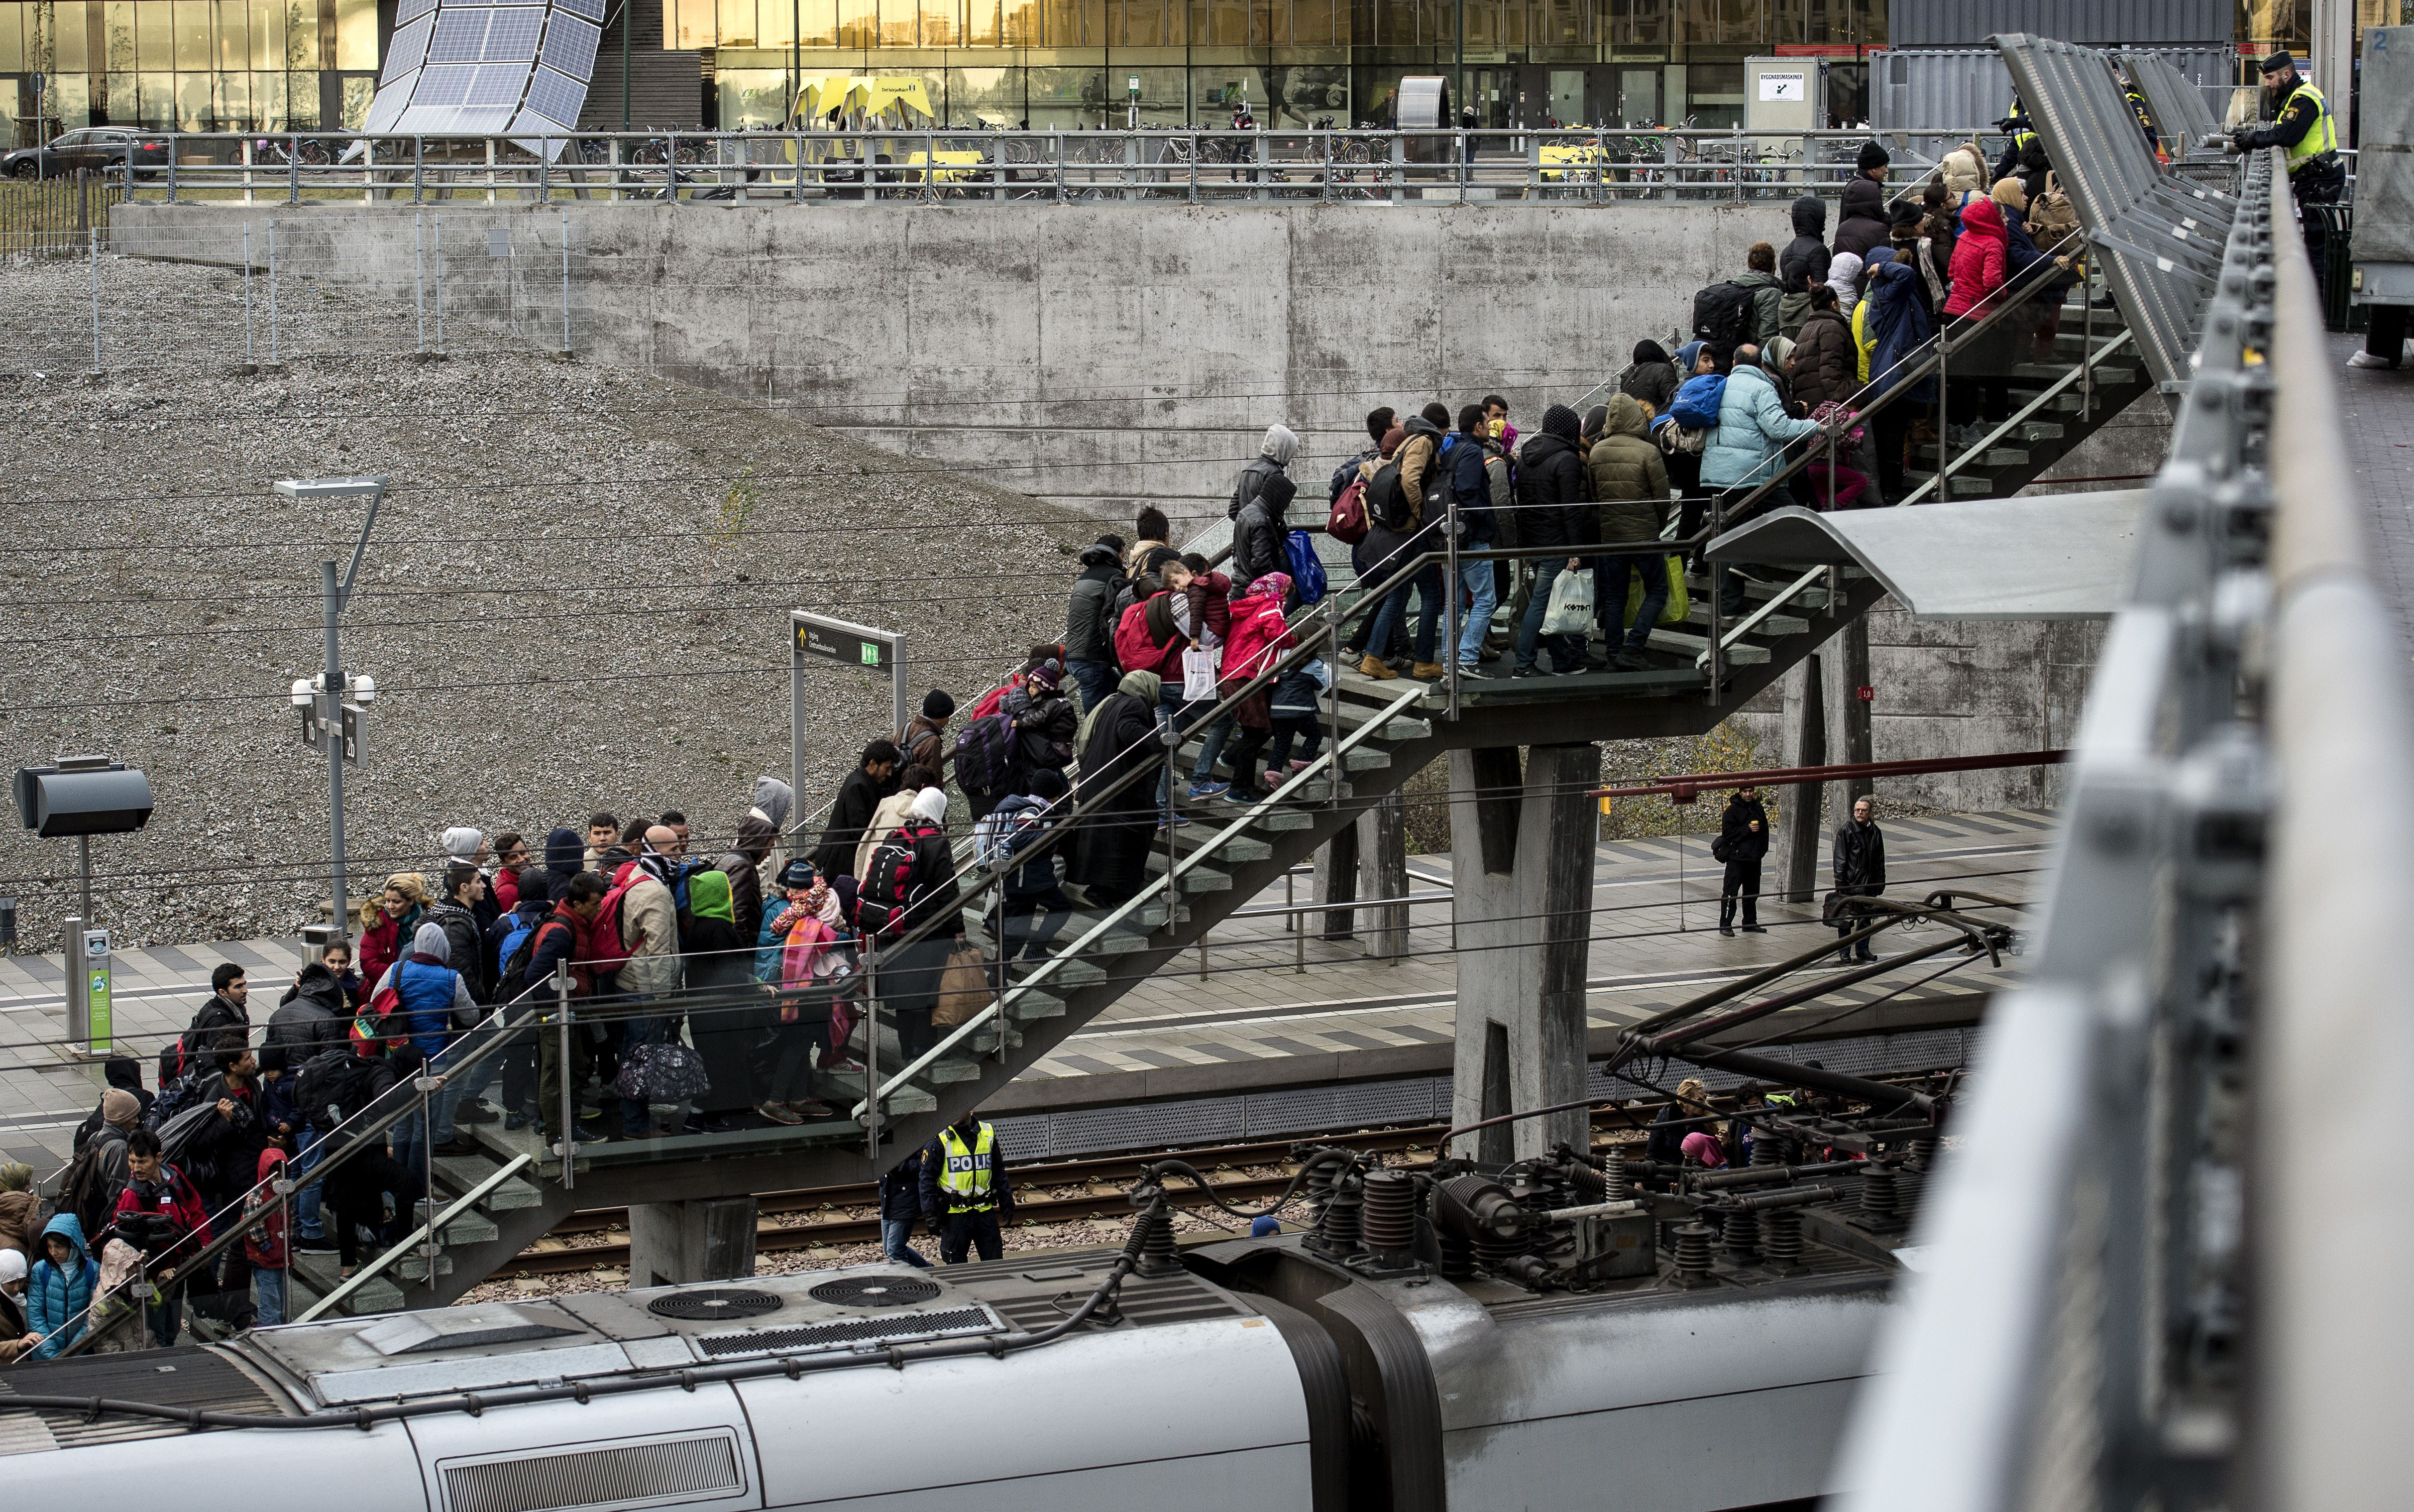 Police organize the line of refugees on the stairway leading up from the trains arriving from Denmark at the Hyllie train station outside Malmo, Sweden, on Nov. 19, 2015